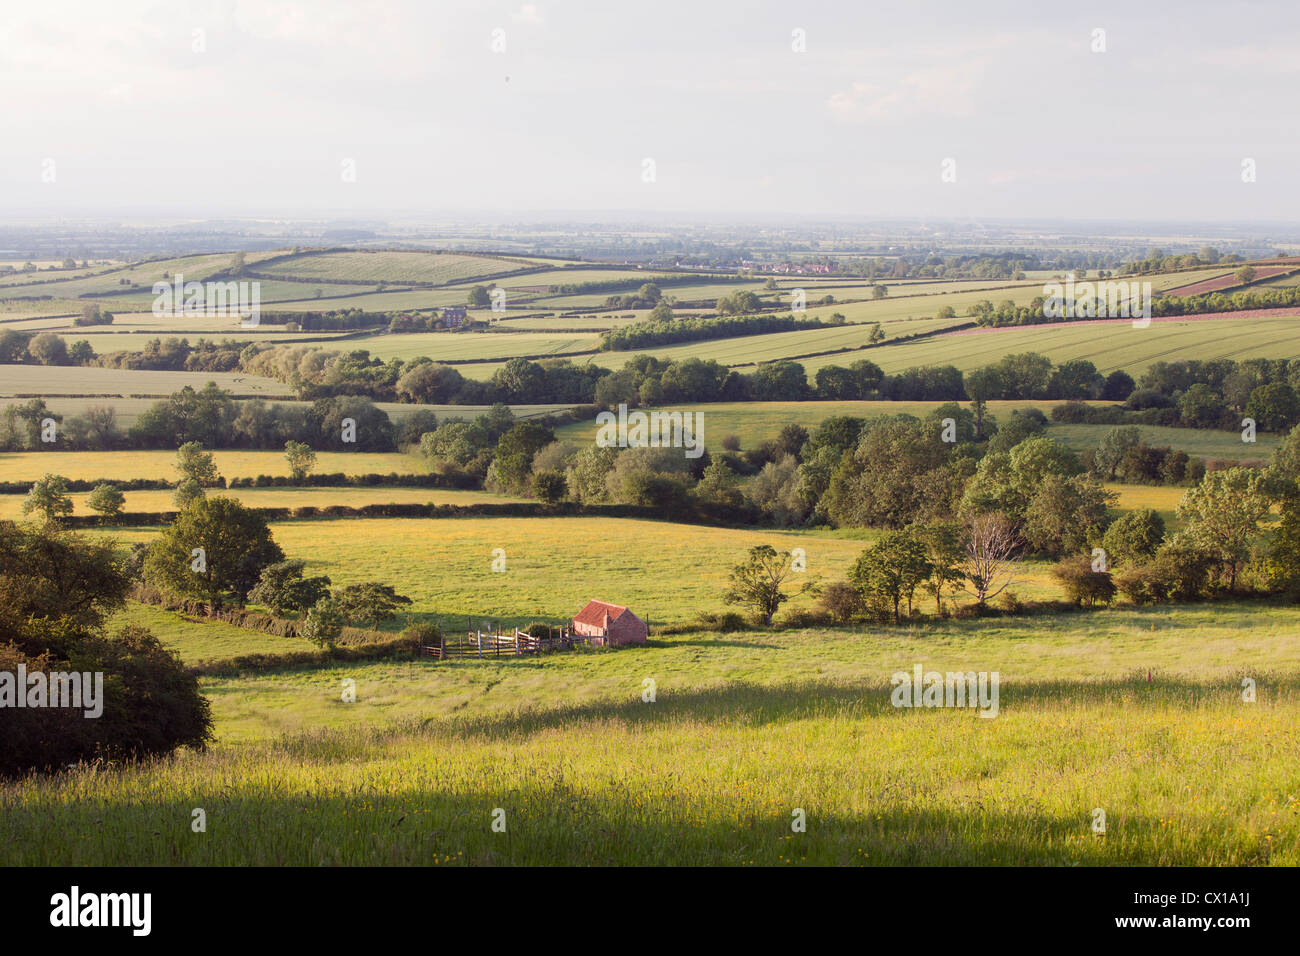 Landscape looking over the Leicestershire and Nottinghamshire border, UK. - Stock Image